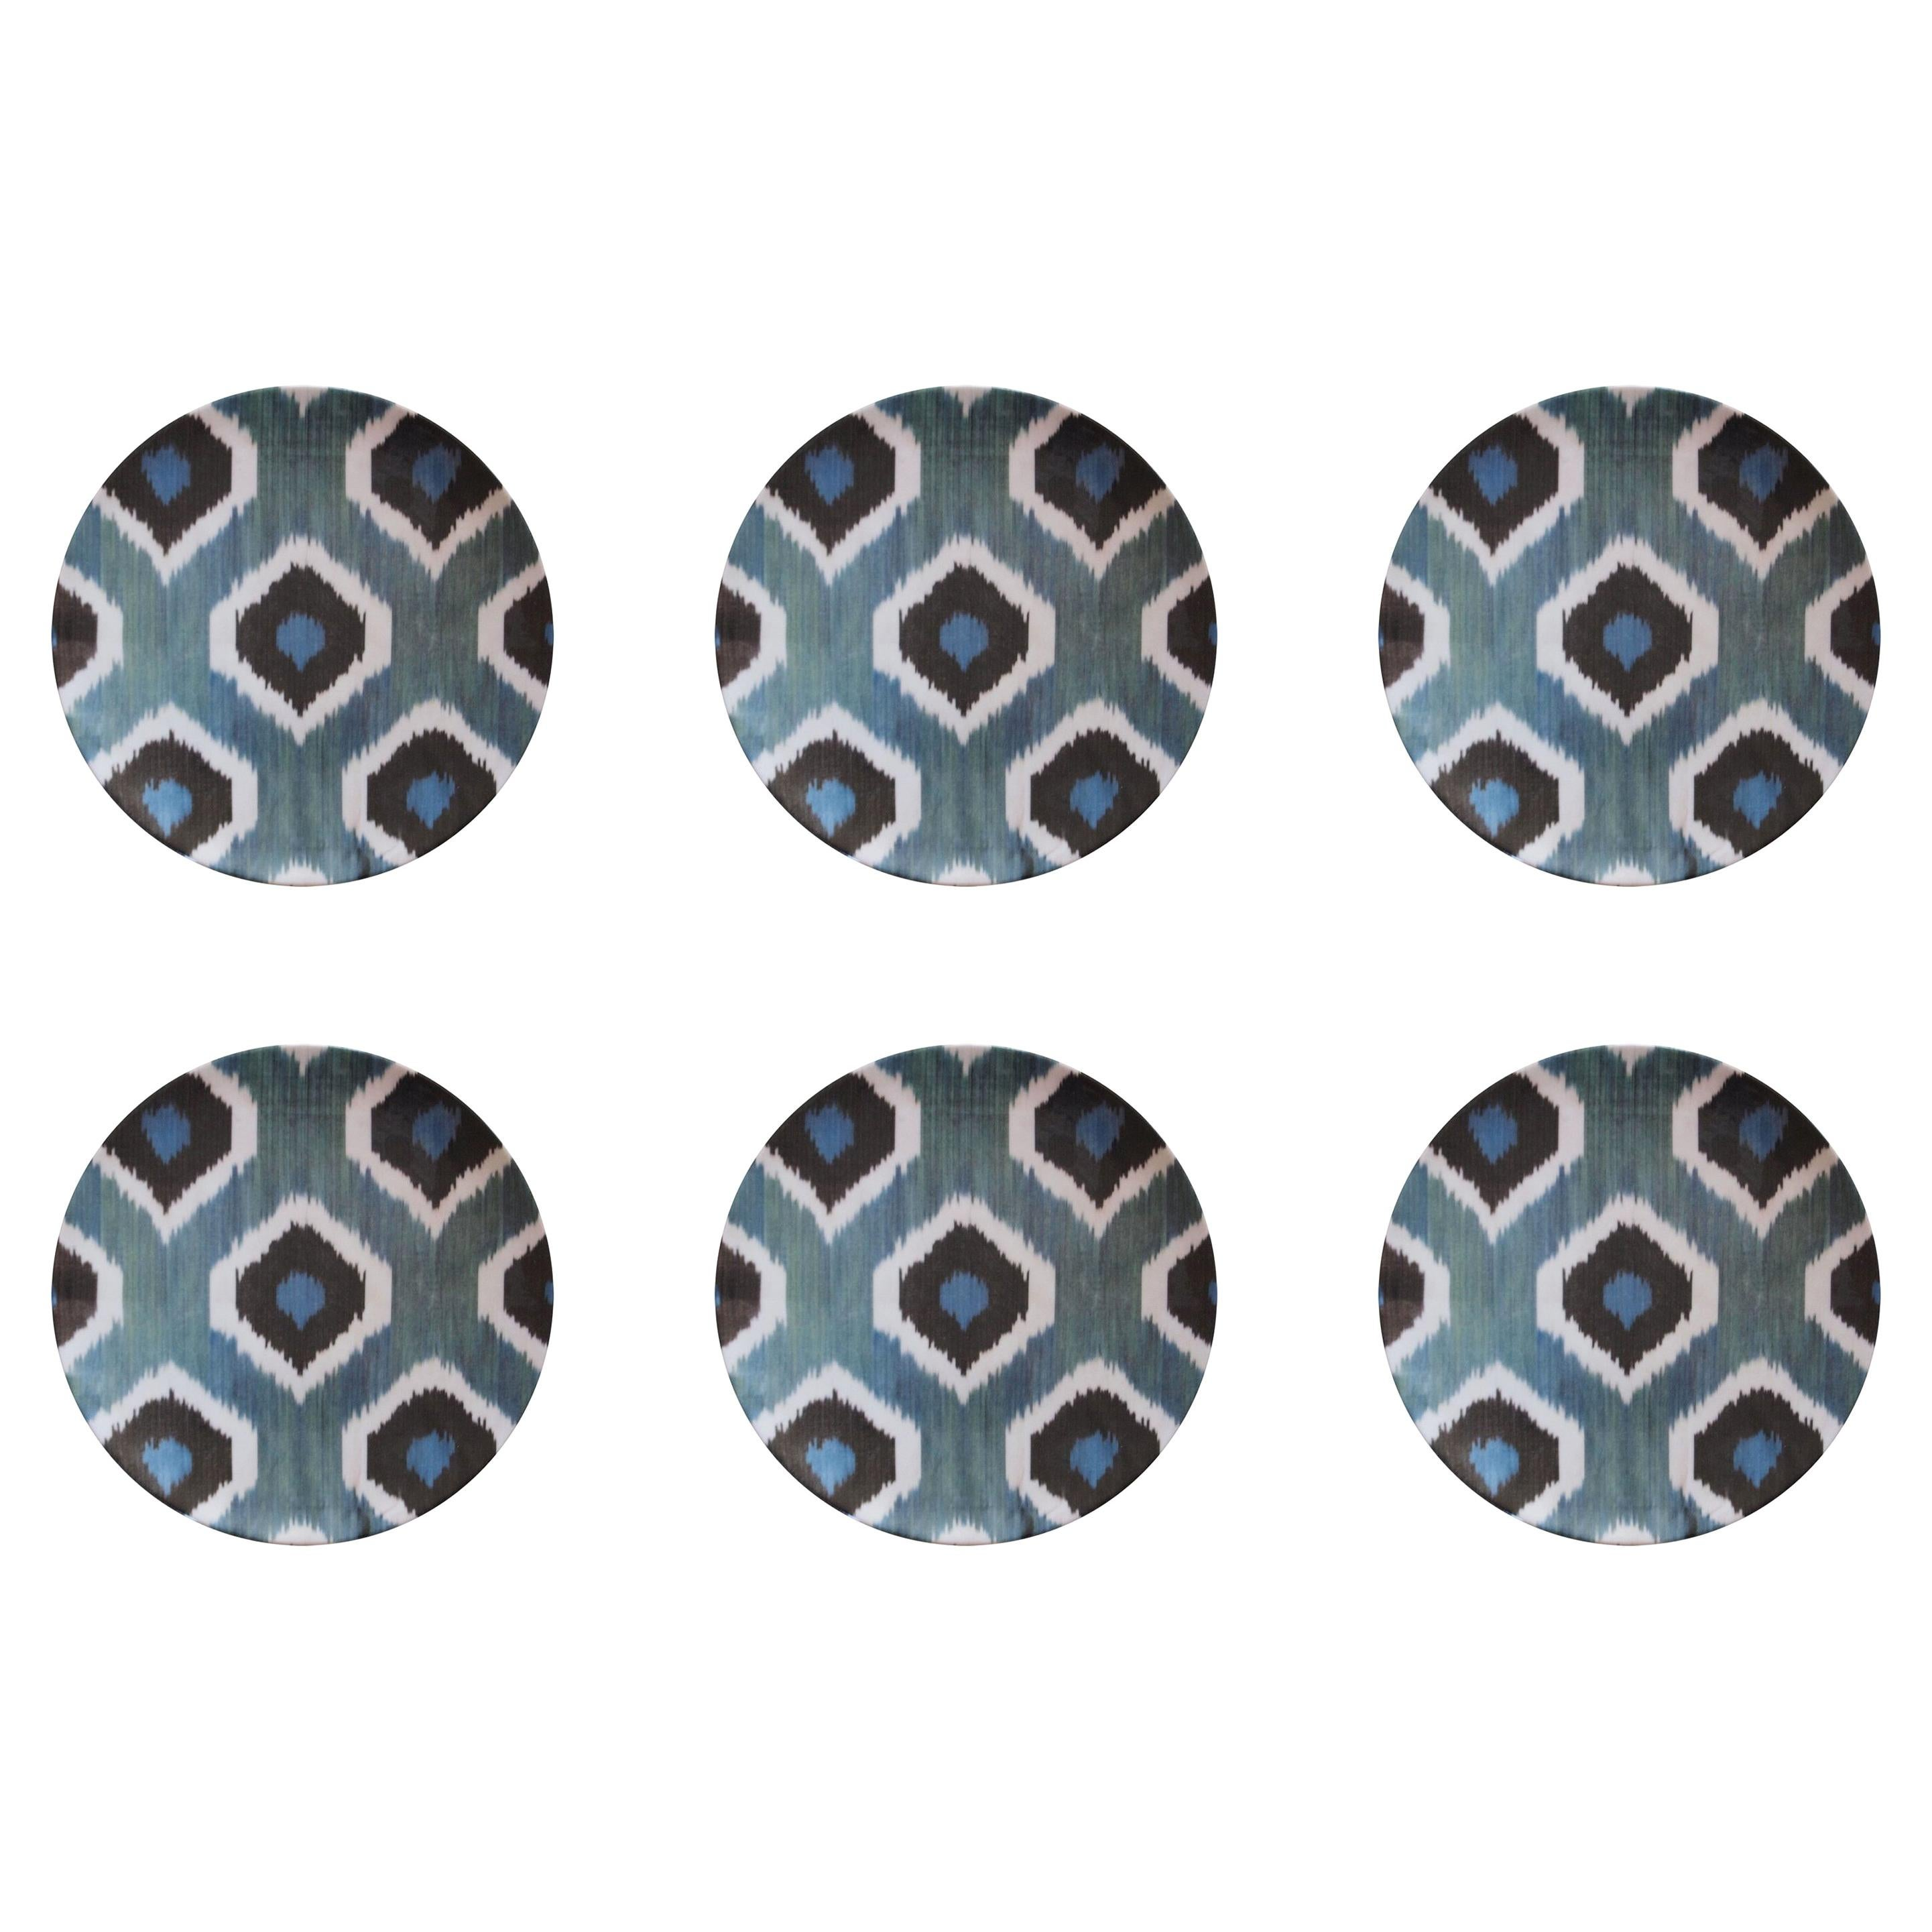 Ikat Porcelain Dessert Plates Set of Six Green Plates Made in Italy